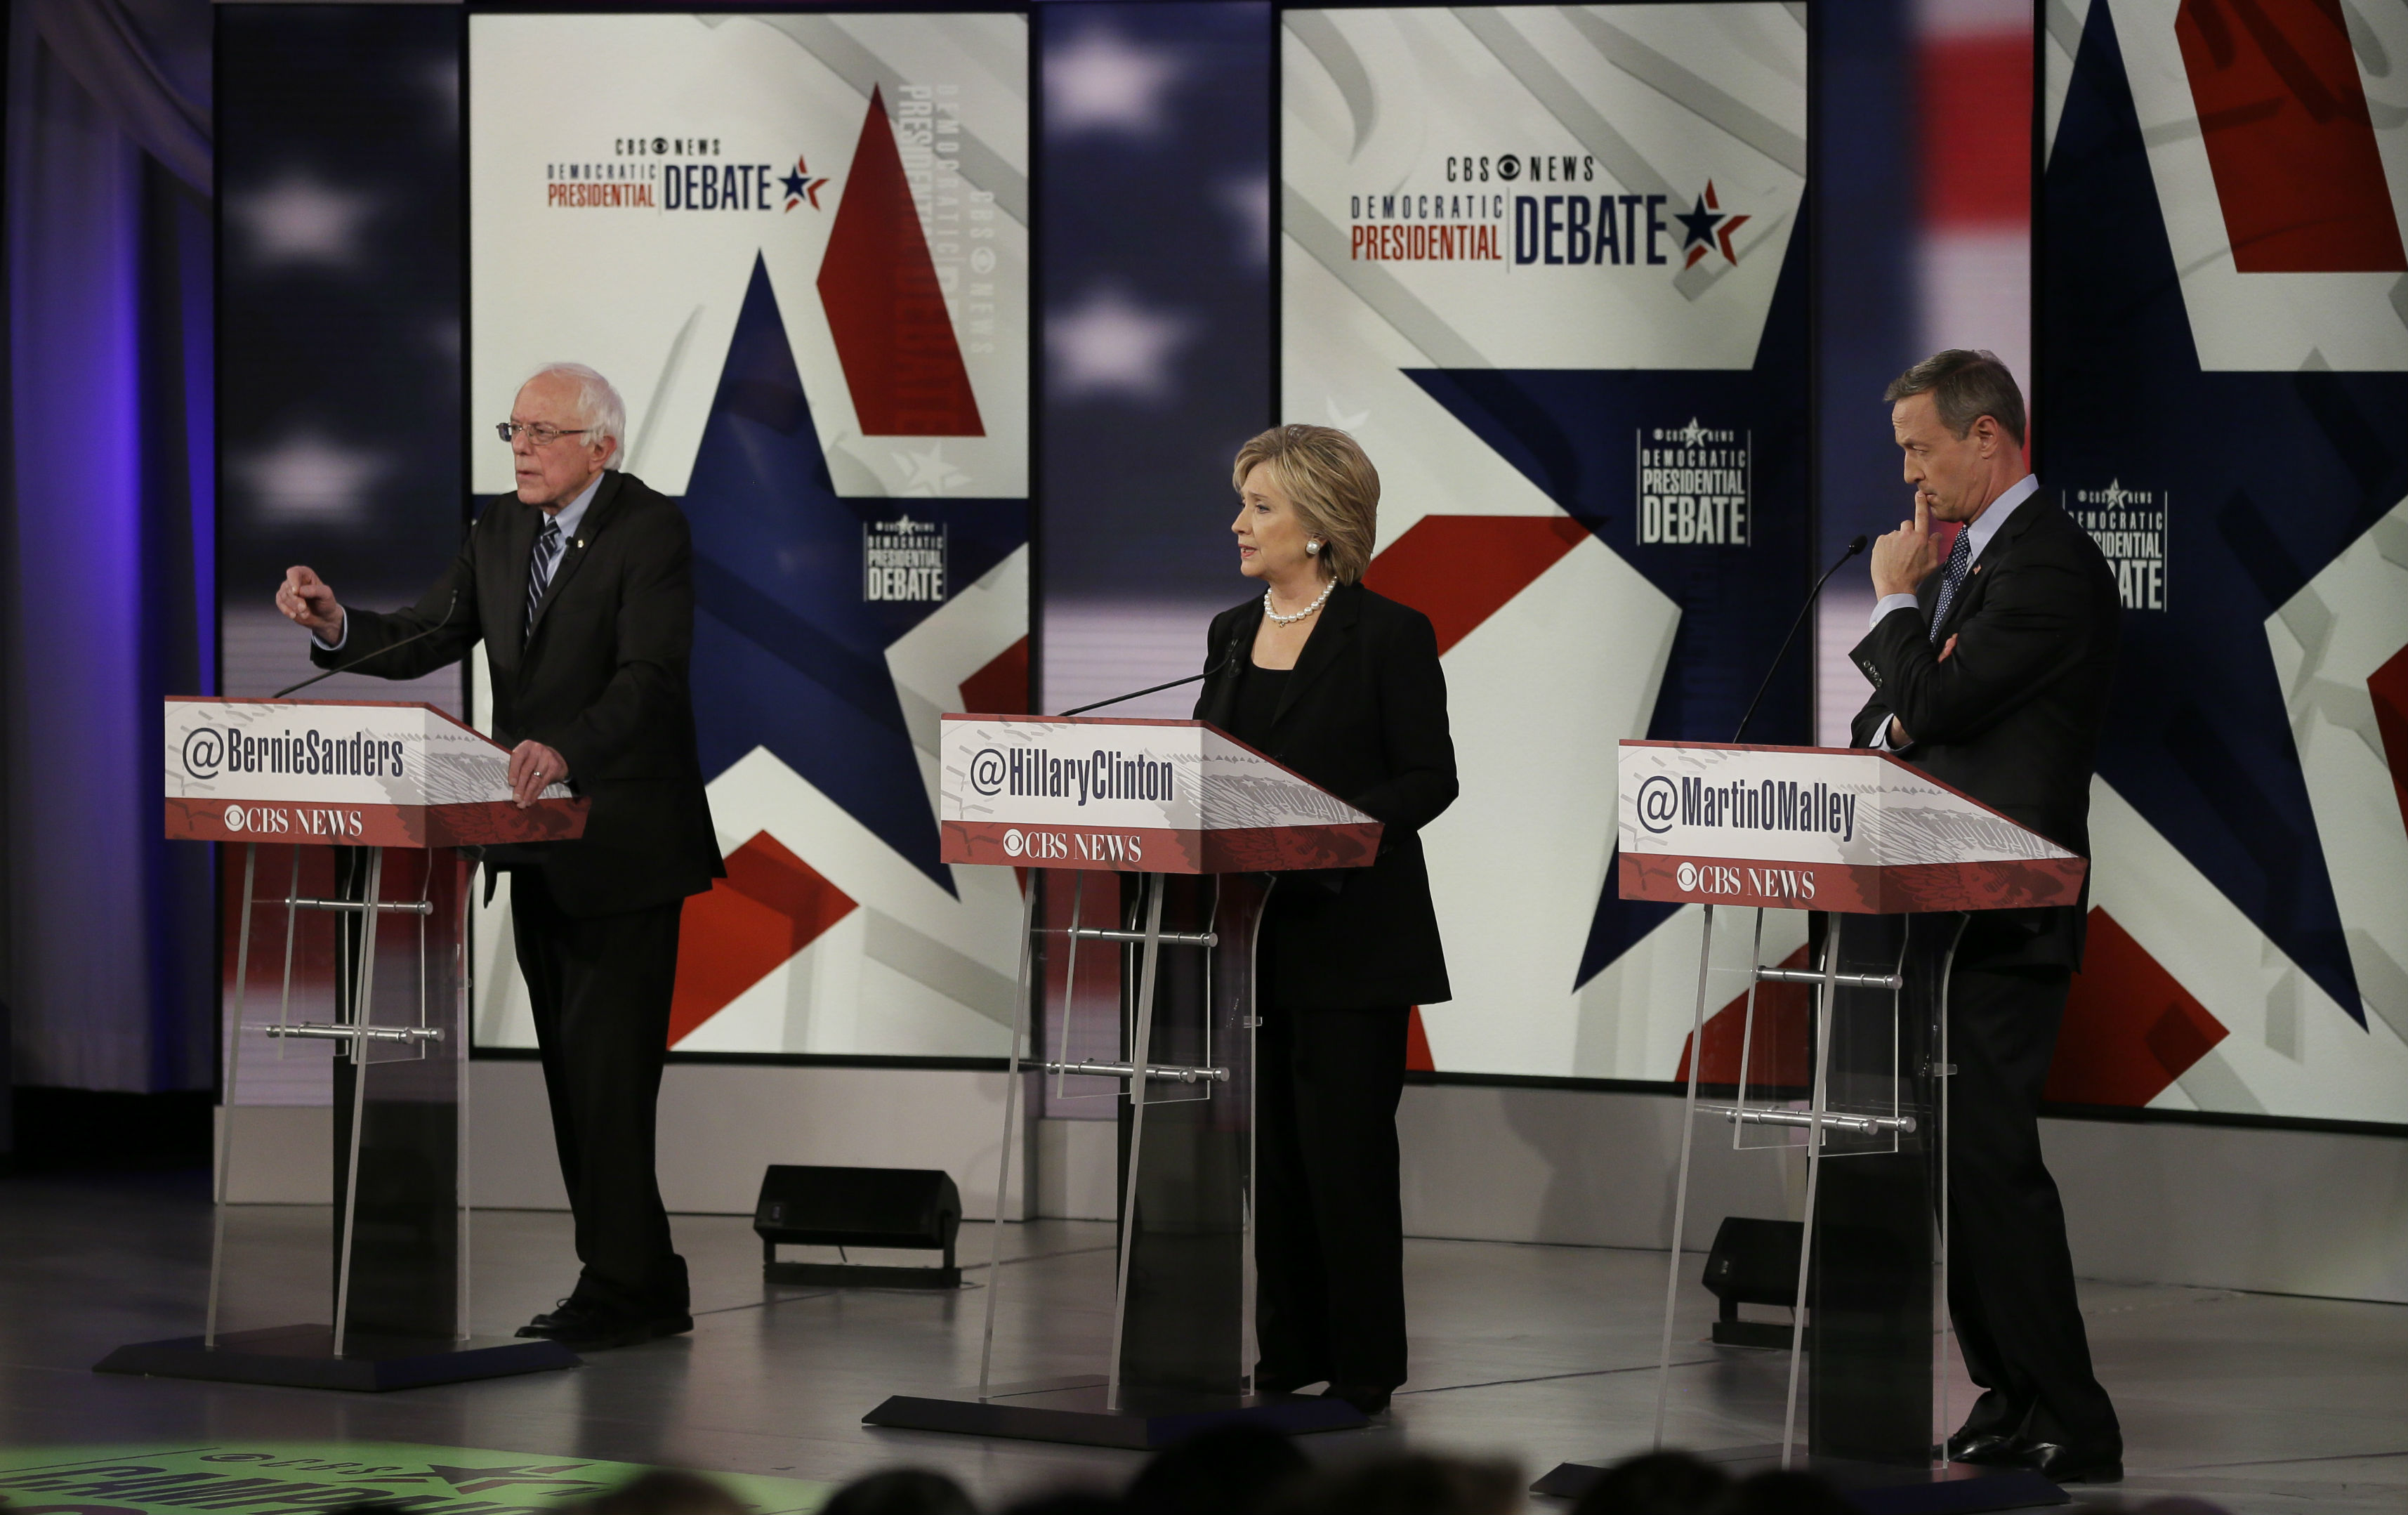 The second Democratic presidential primary debate